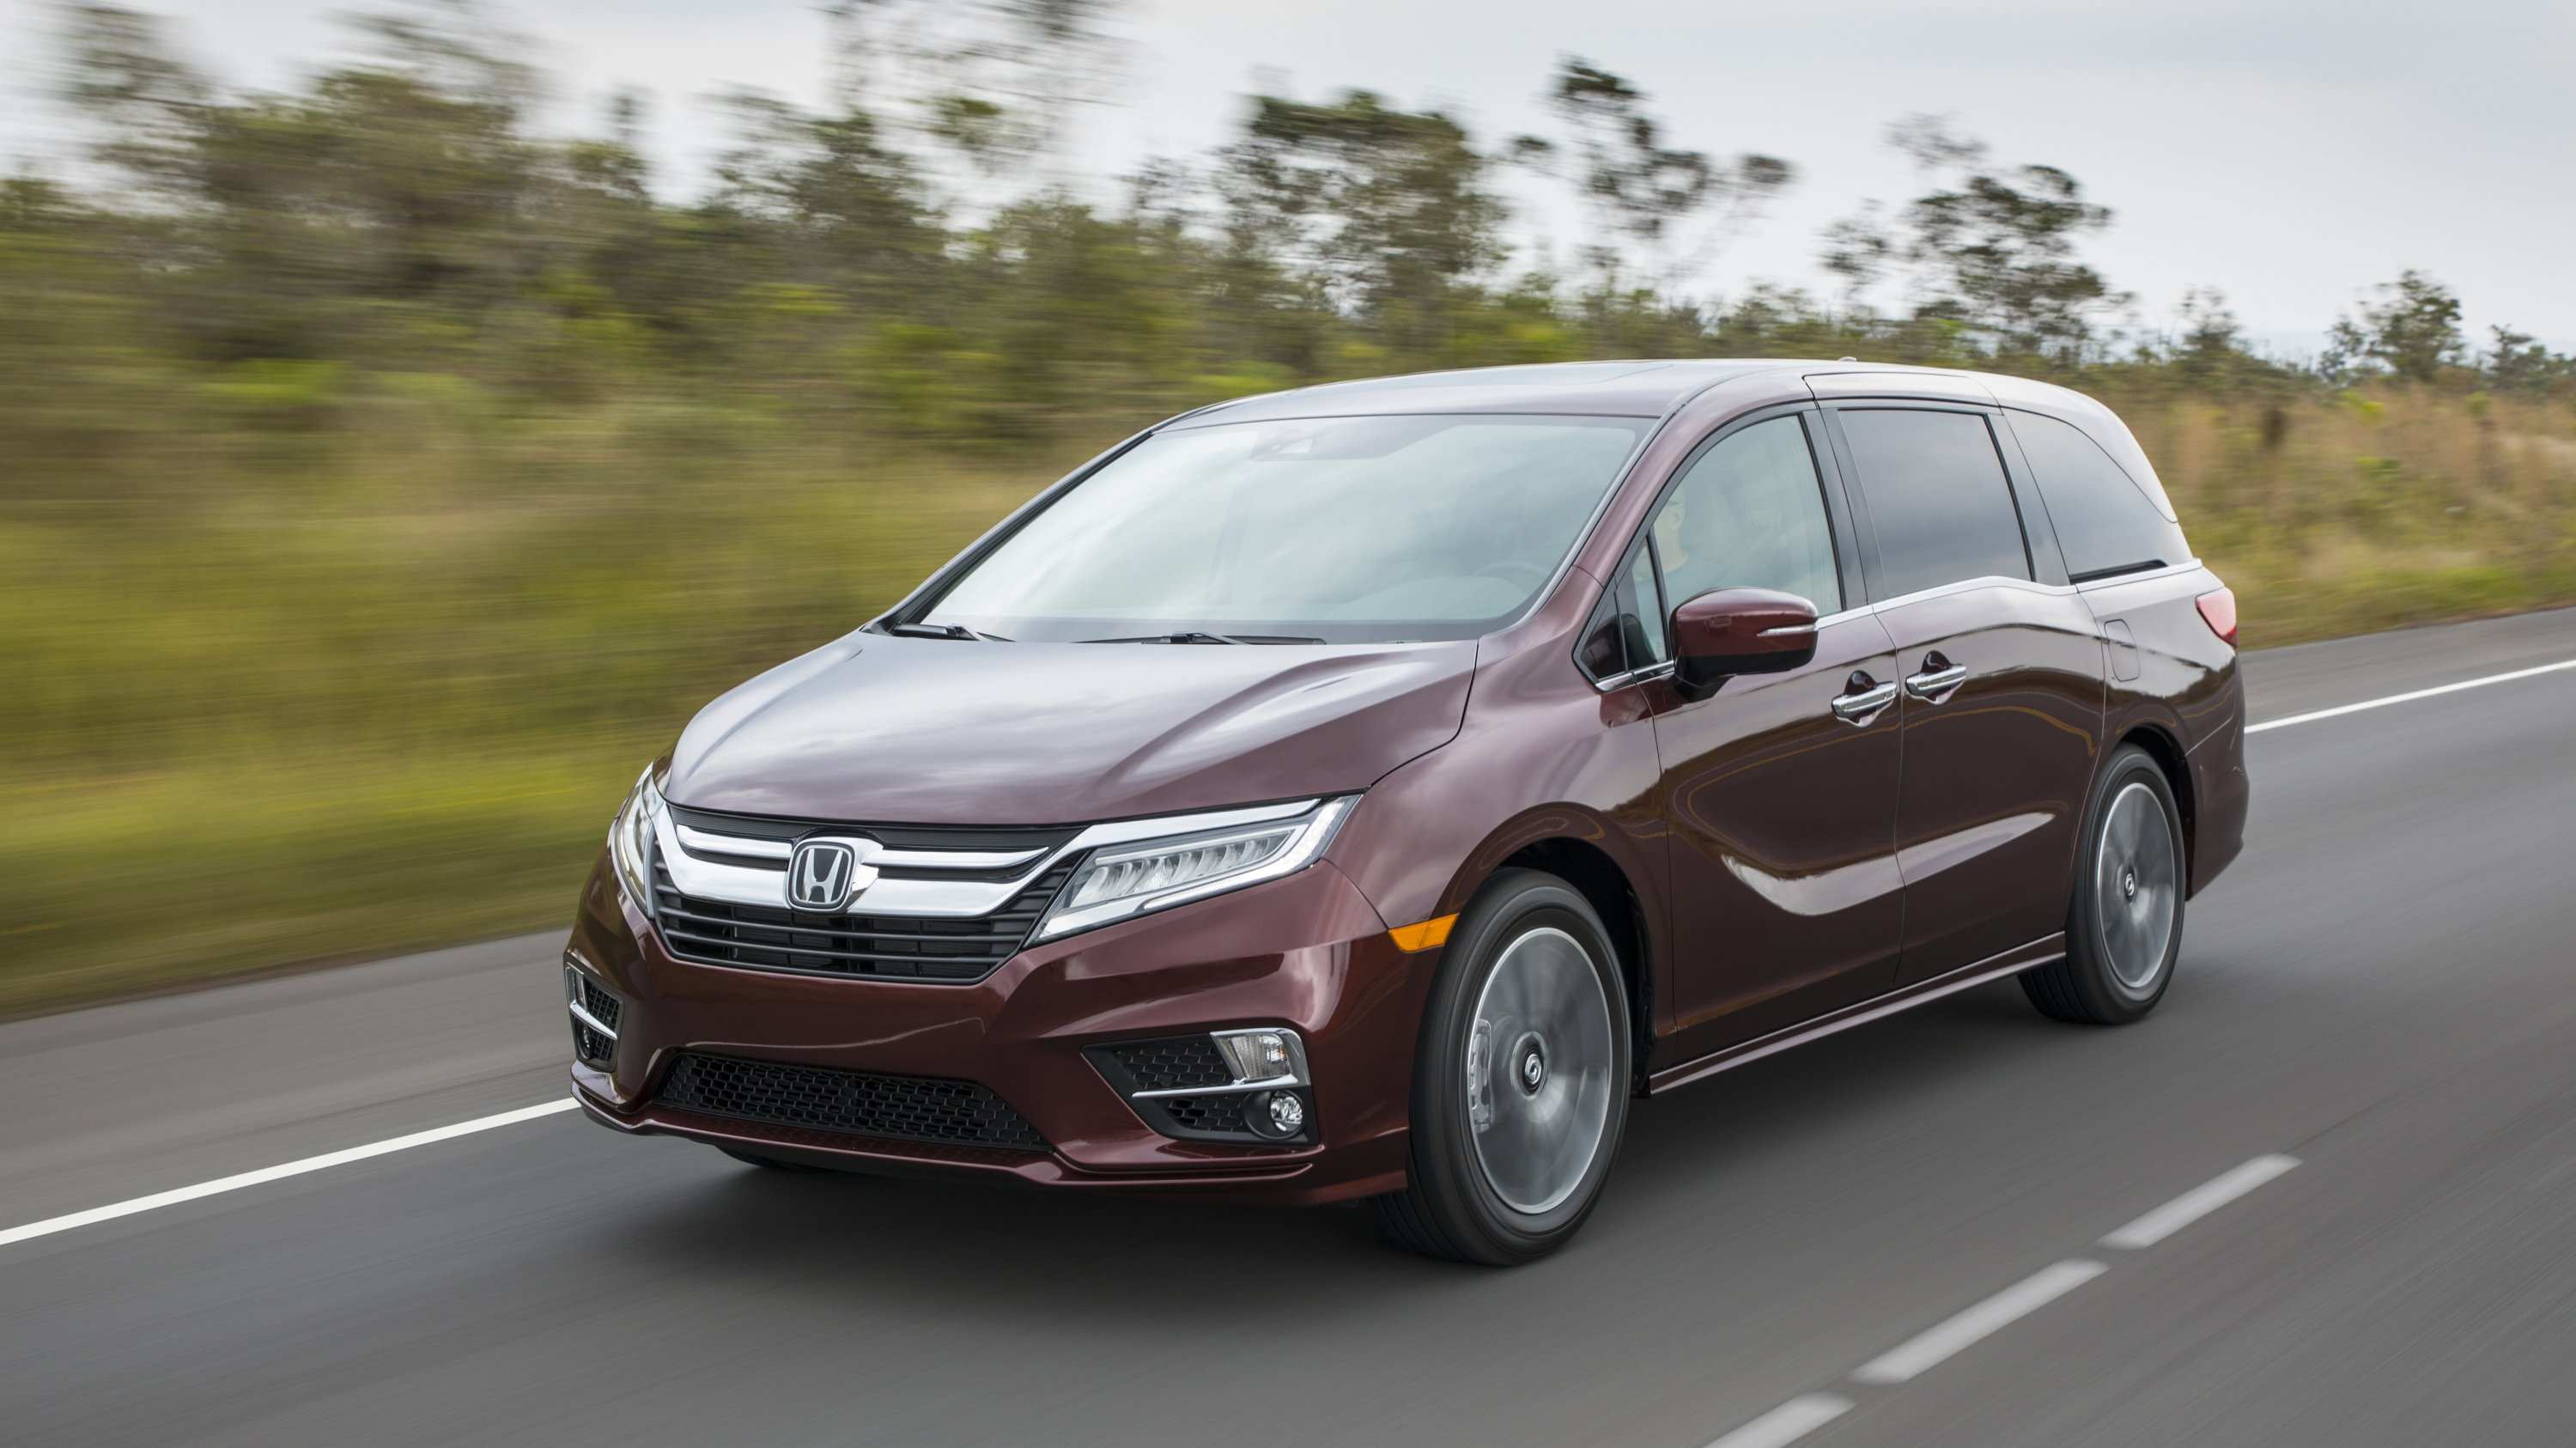 22 The Best When Does 2020 Honda Odyssey Come Out Review And Release Date